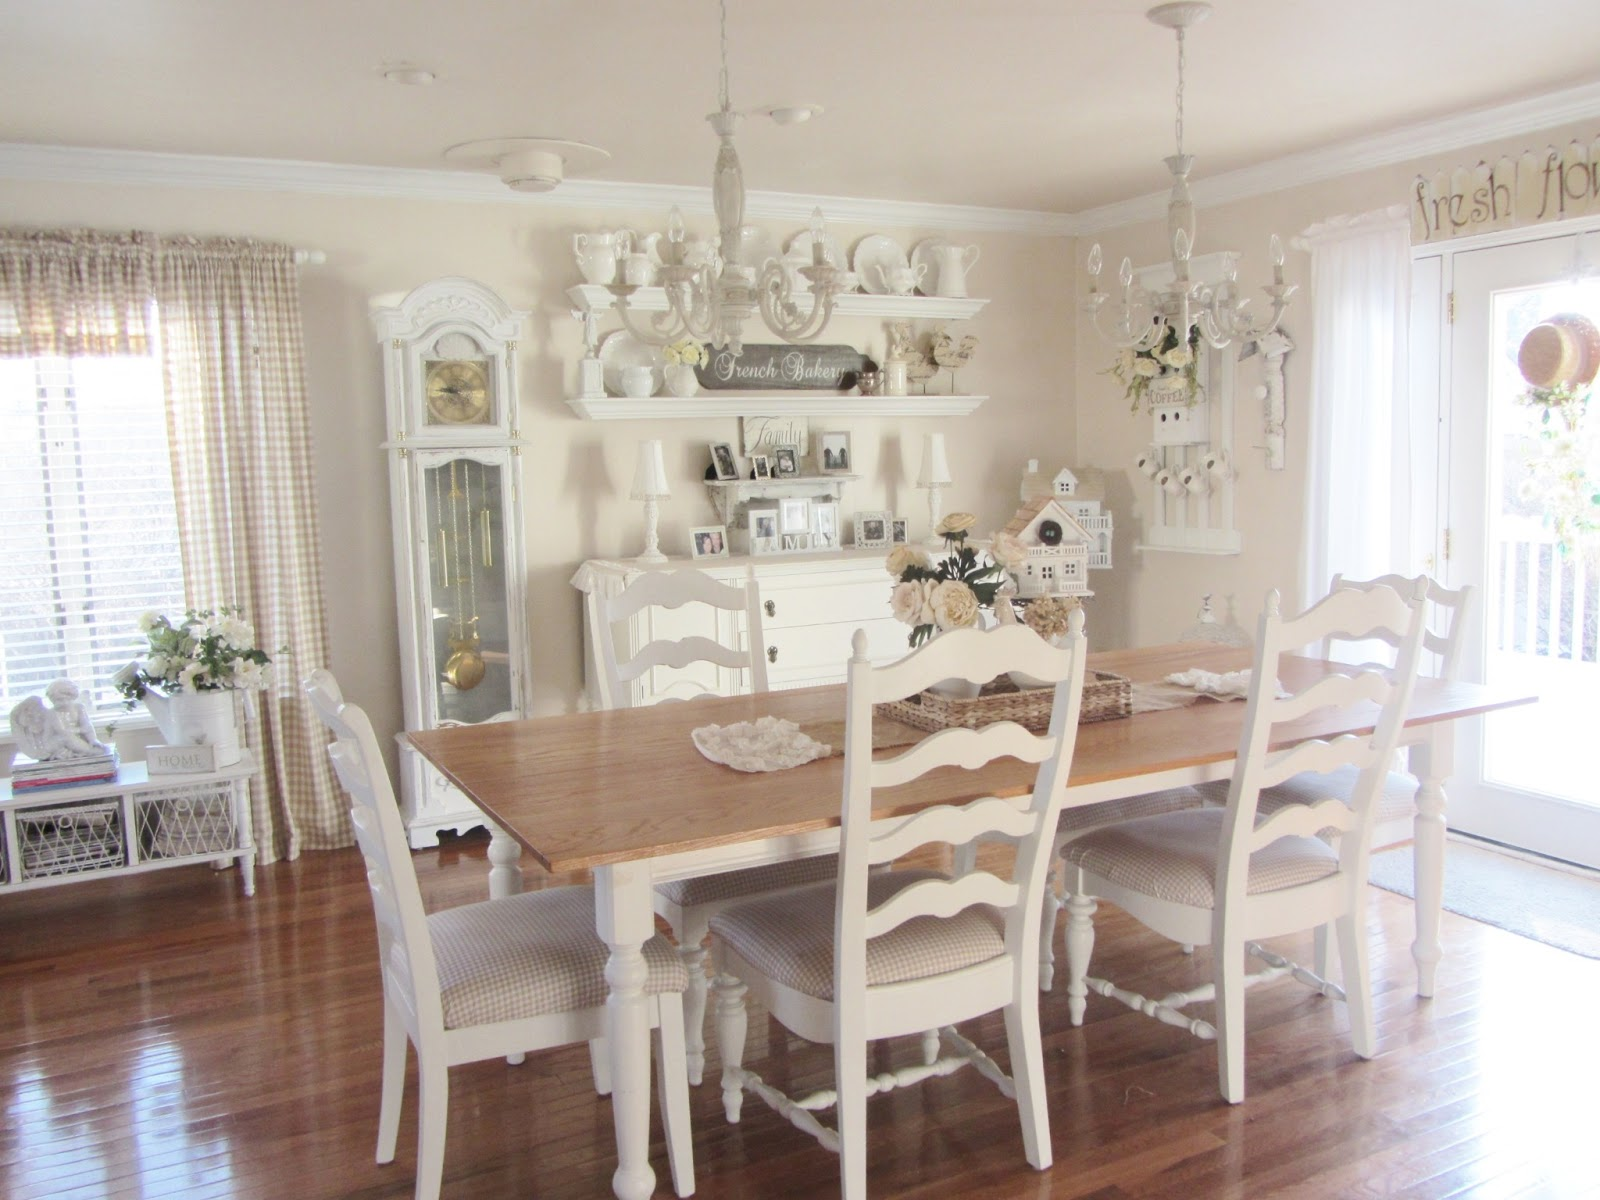 Junk chic cottage for Vintage style dining room ideas